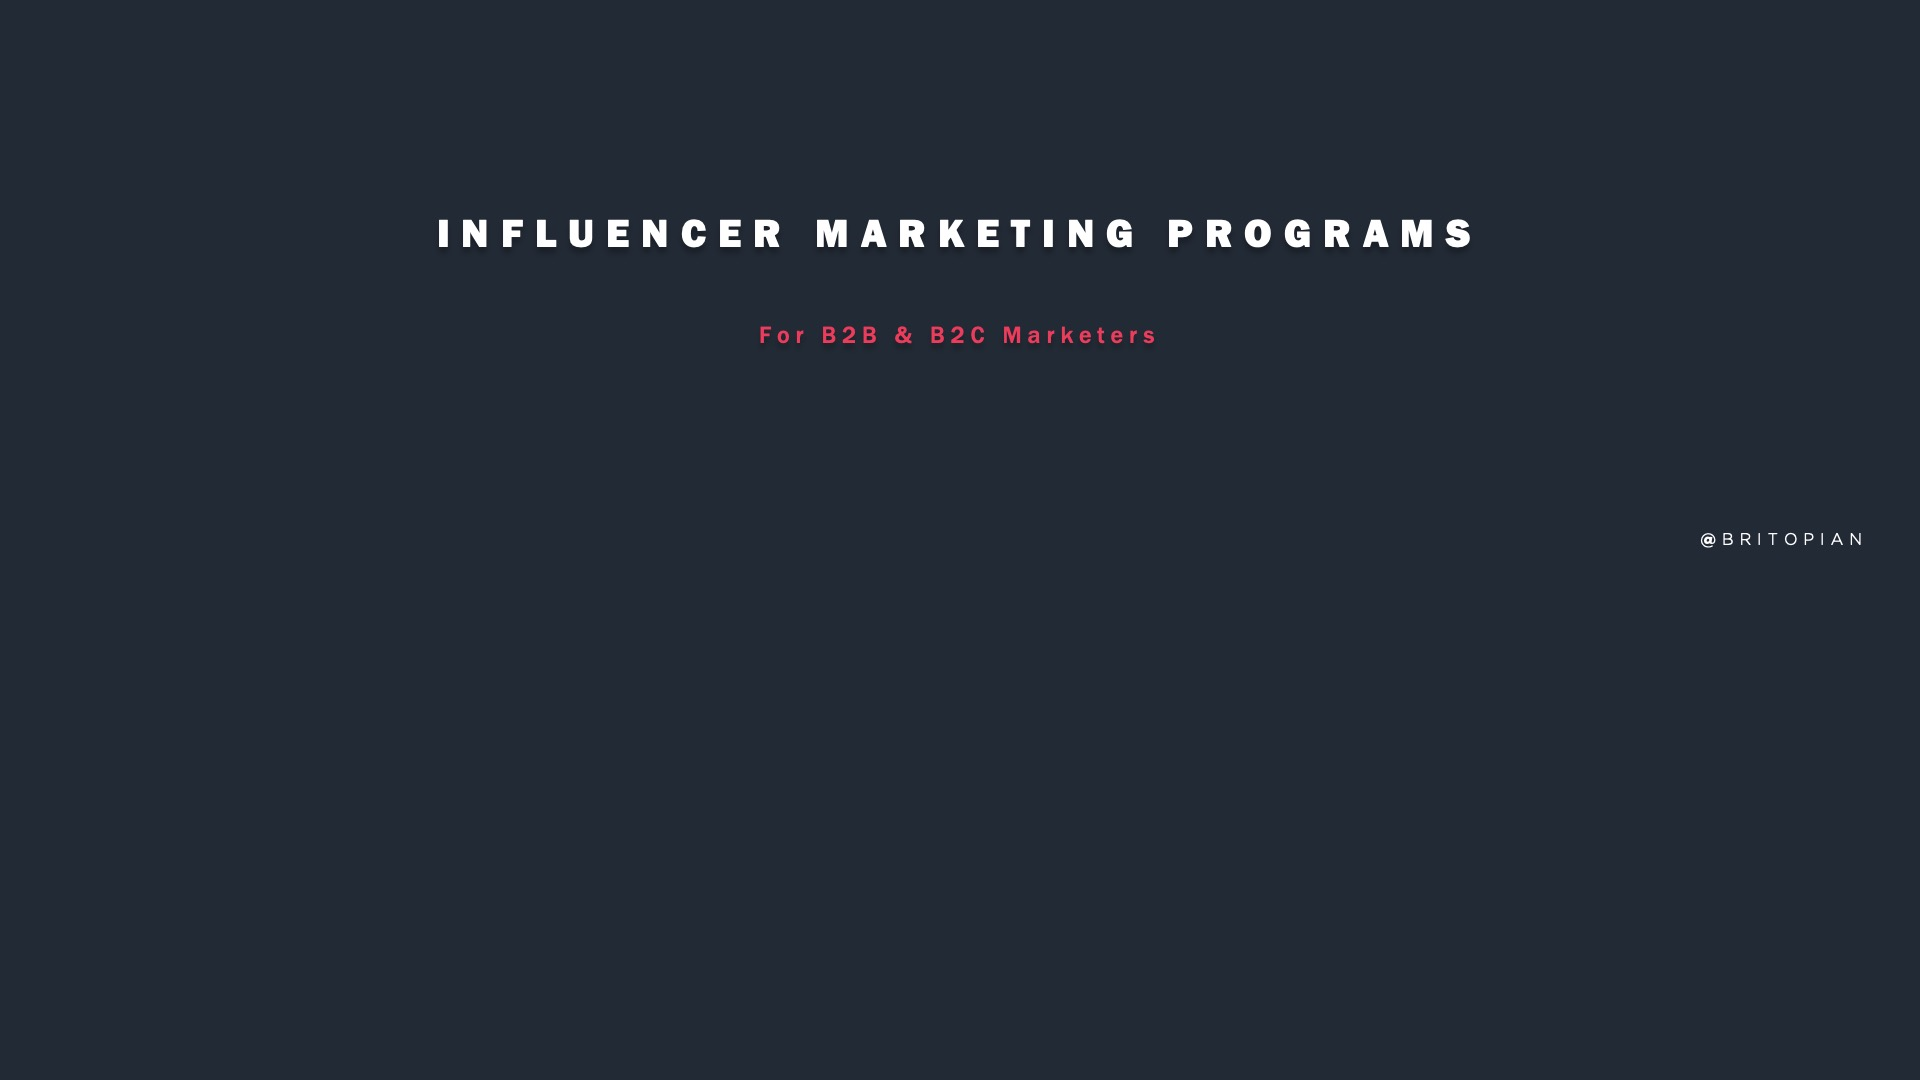 Influencer Marketing Programs for B2B and Consumer Brands